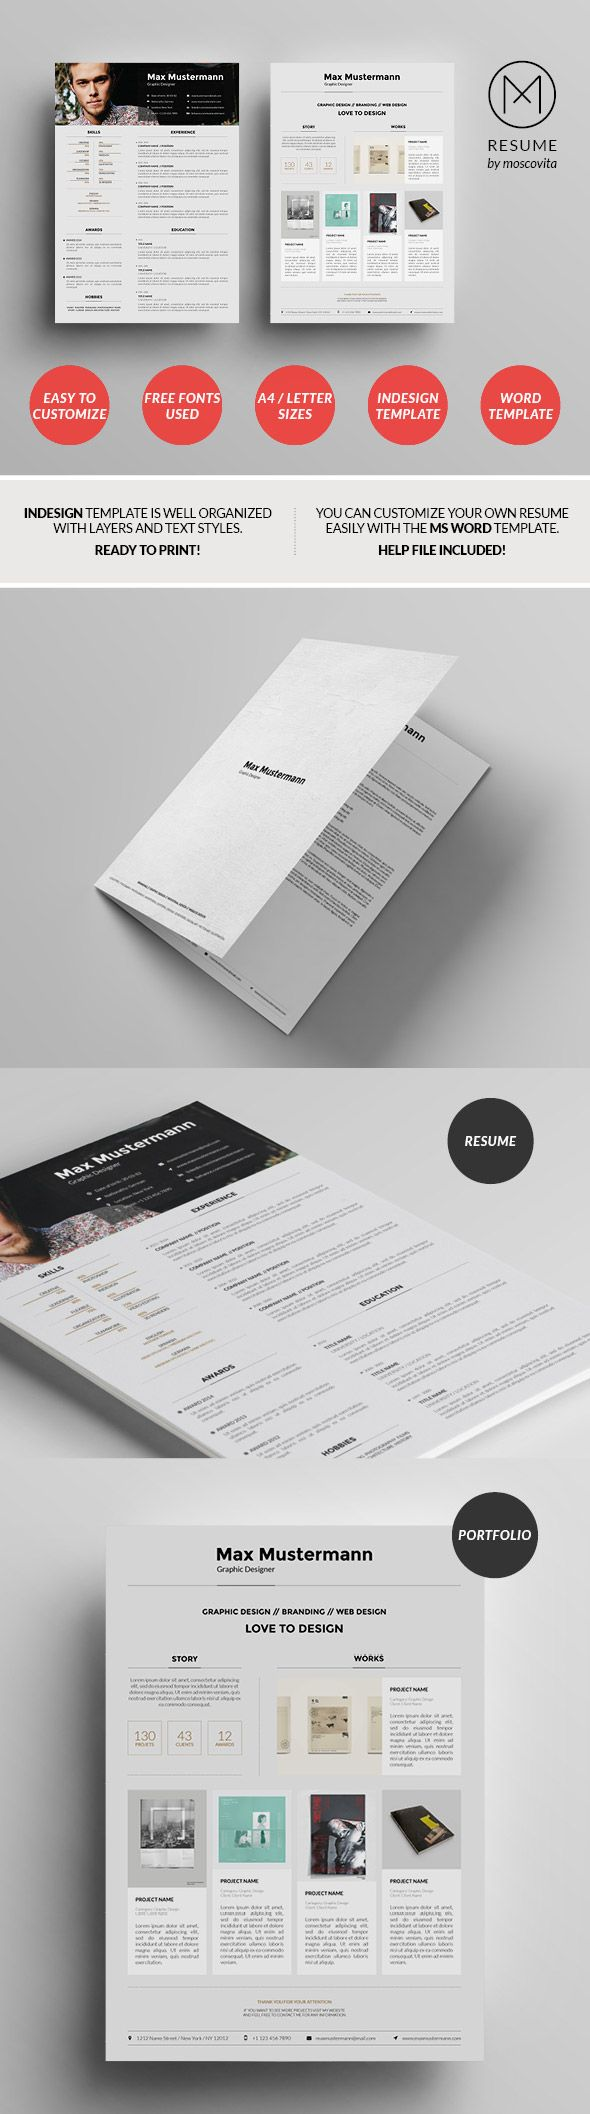 Structured Creative Resume Template Design 206 best